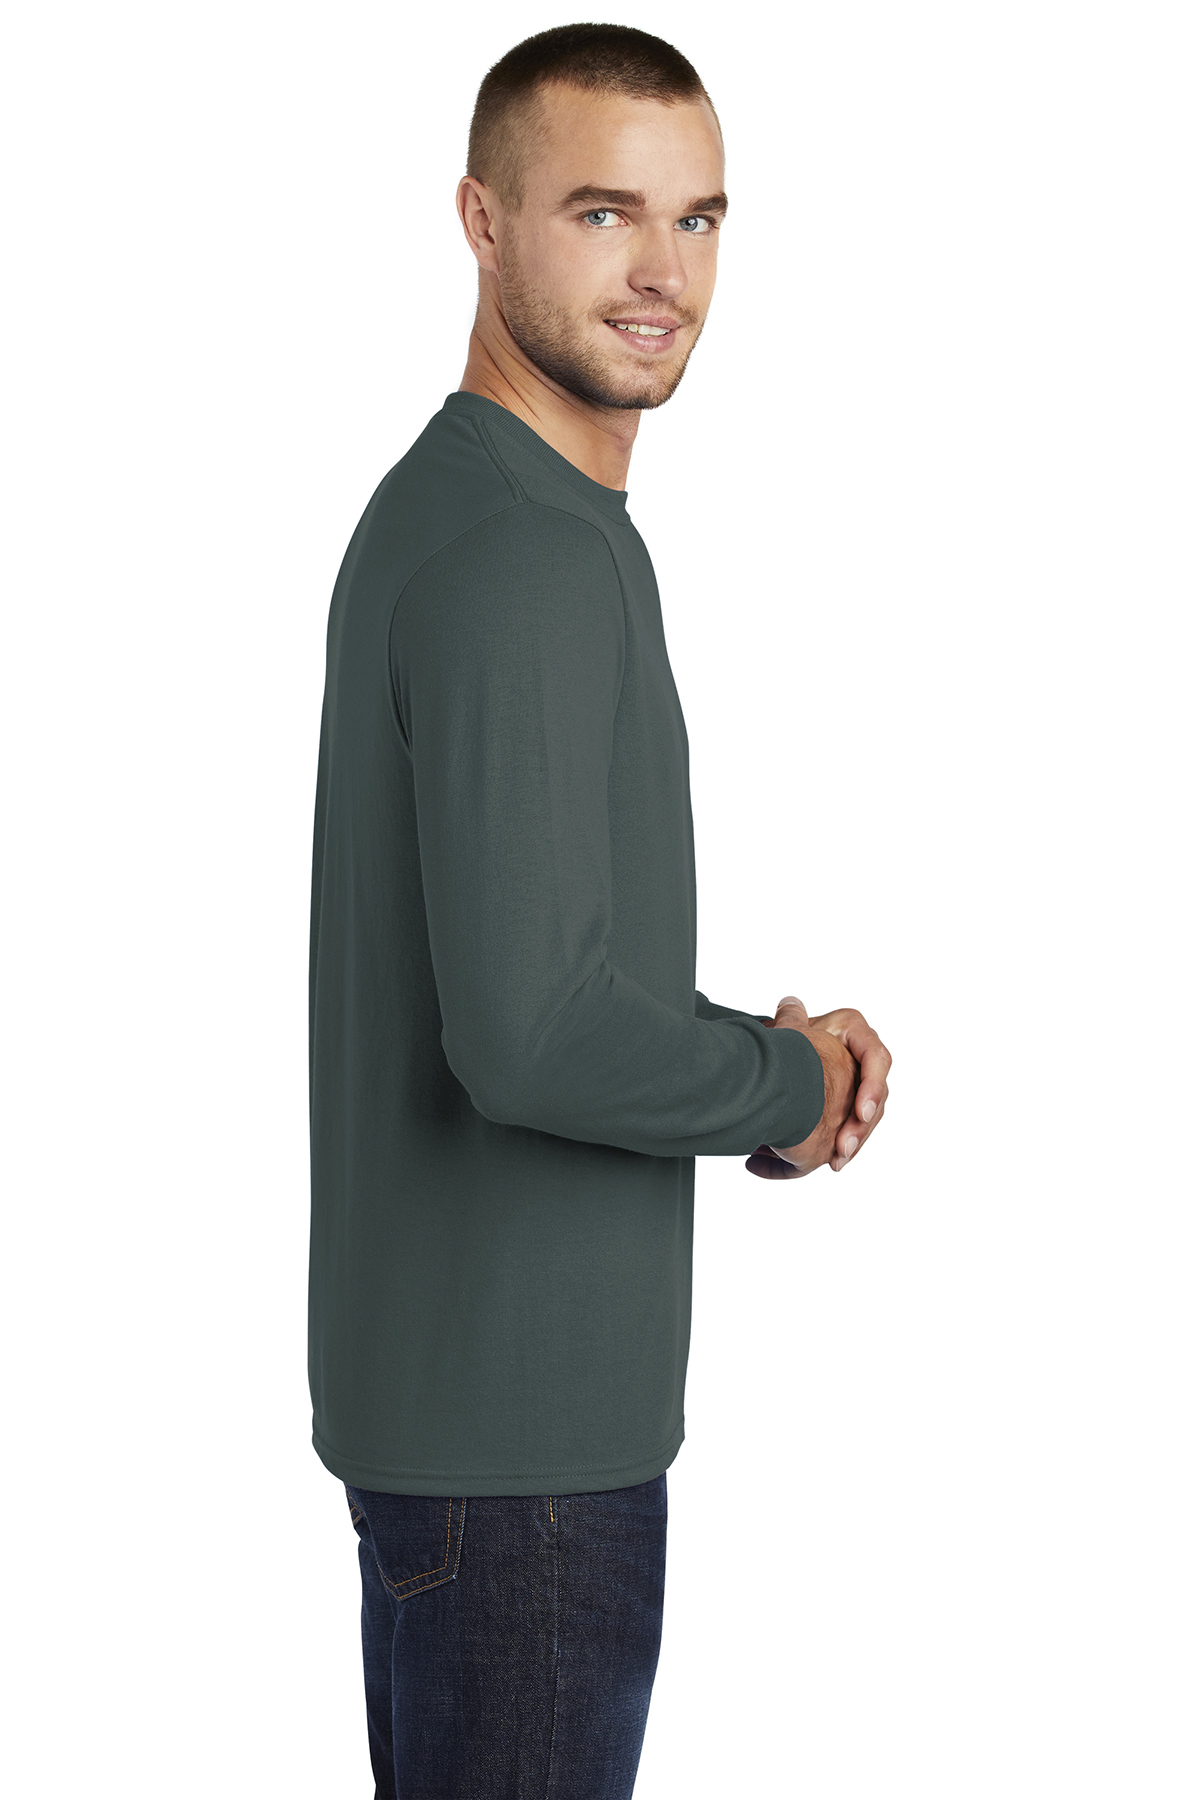 cd7f20b1dc28 ... Port & Company® Tall Long Sleeve Core Blend Tee. A maximum of 8 logos  have been uploaded. Please remove a logo from My Logos to continue